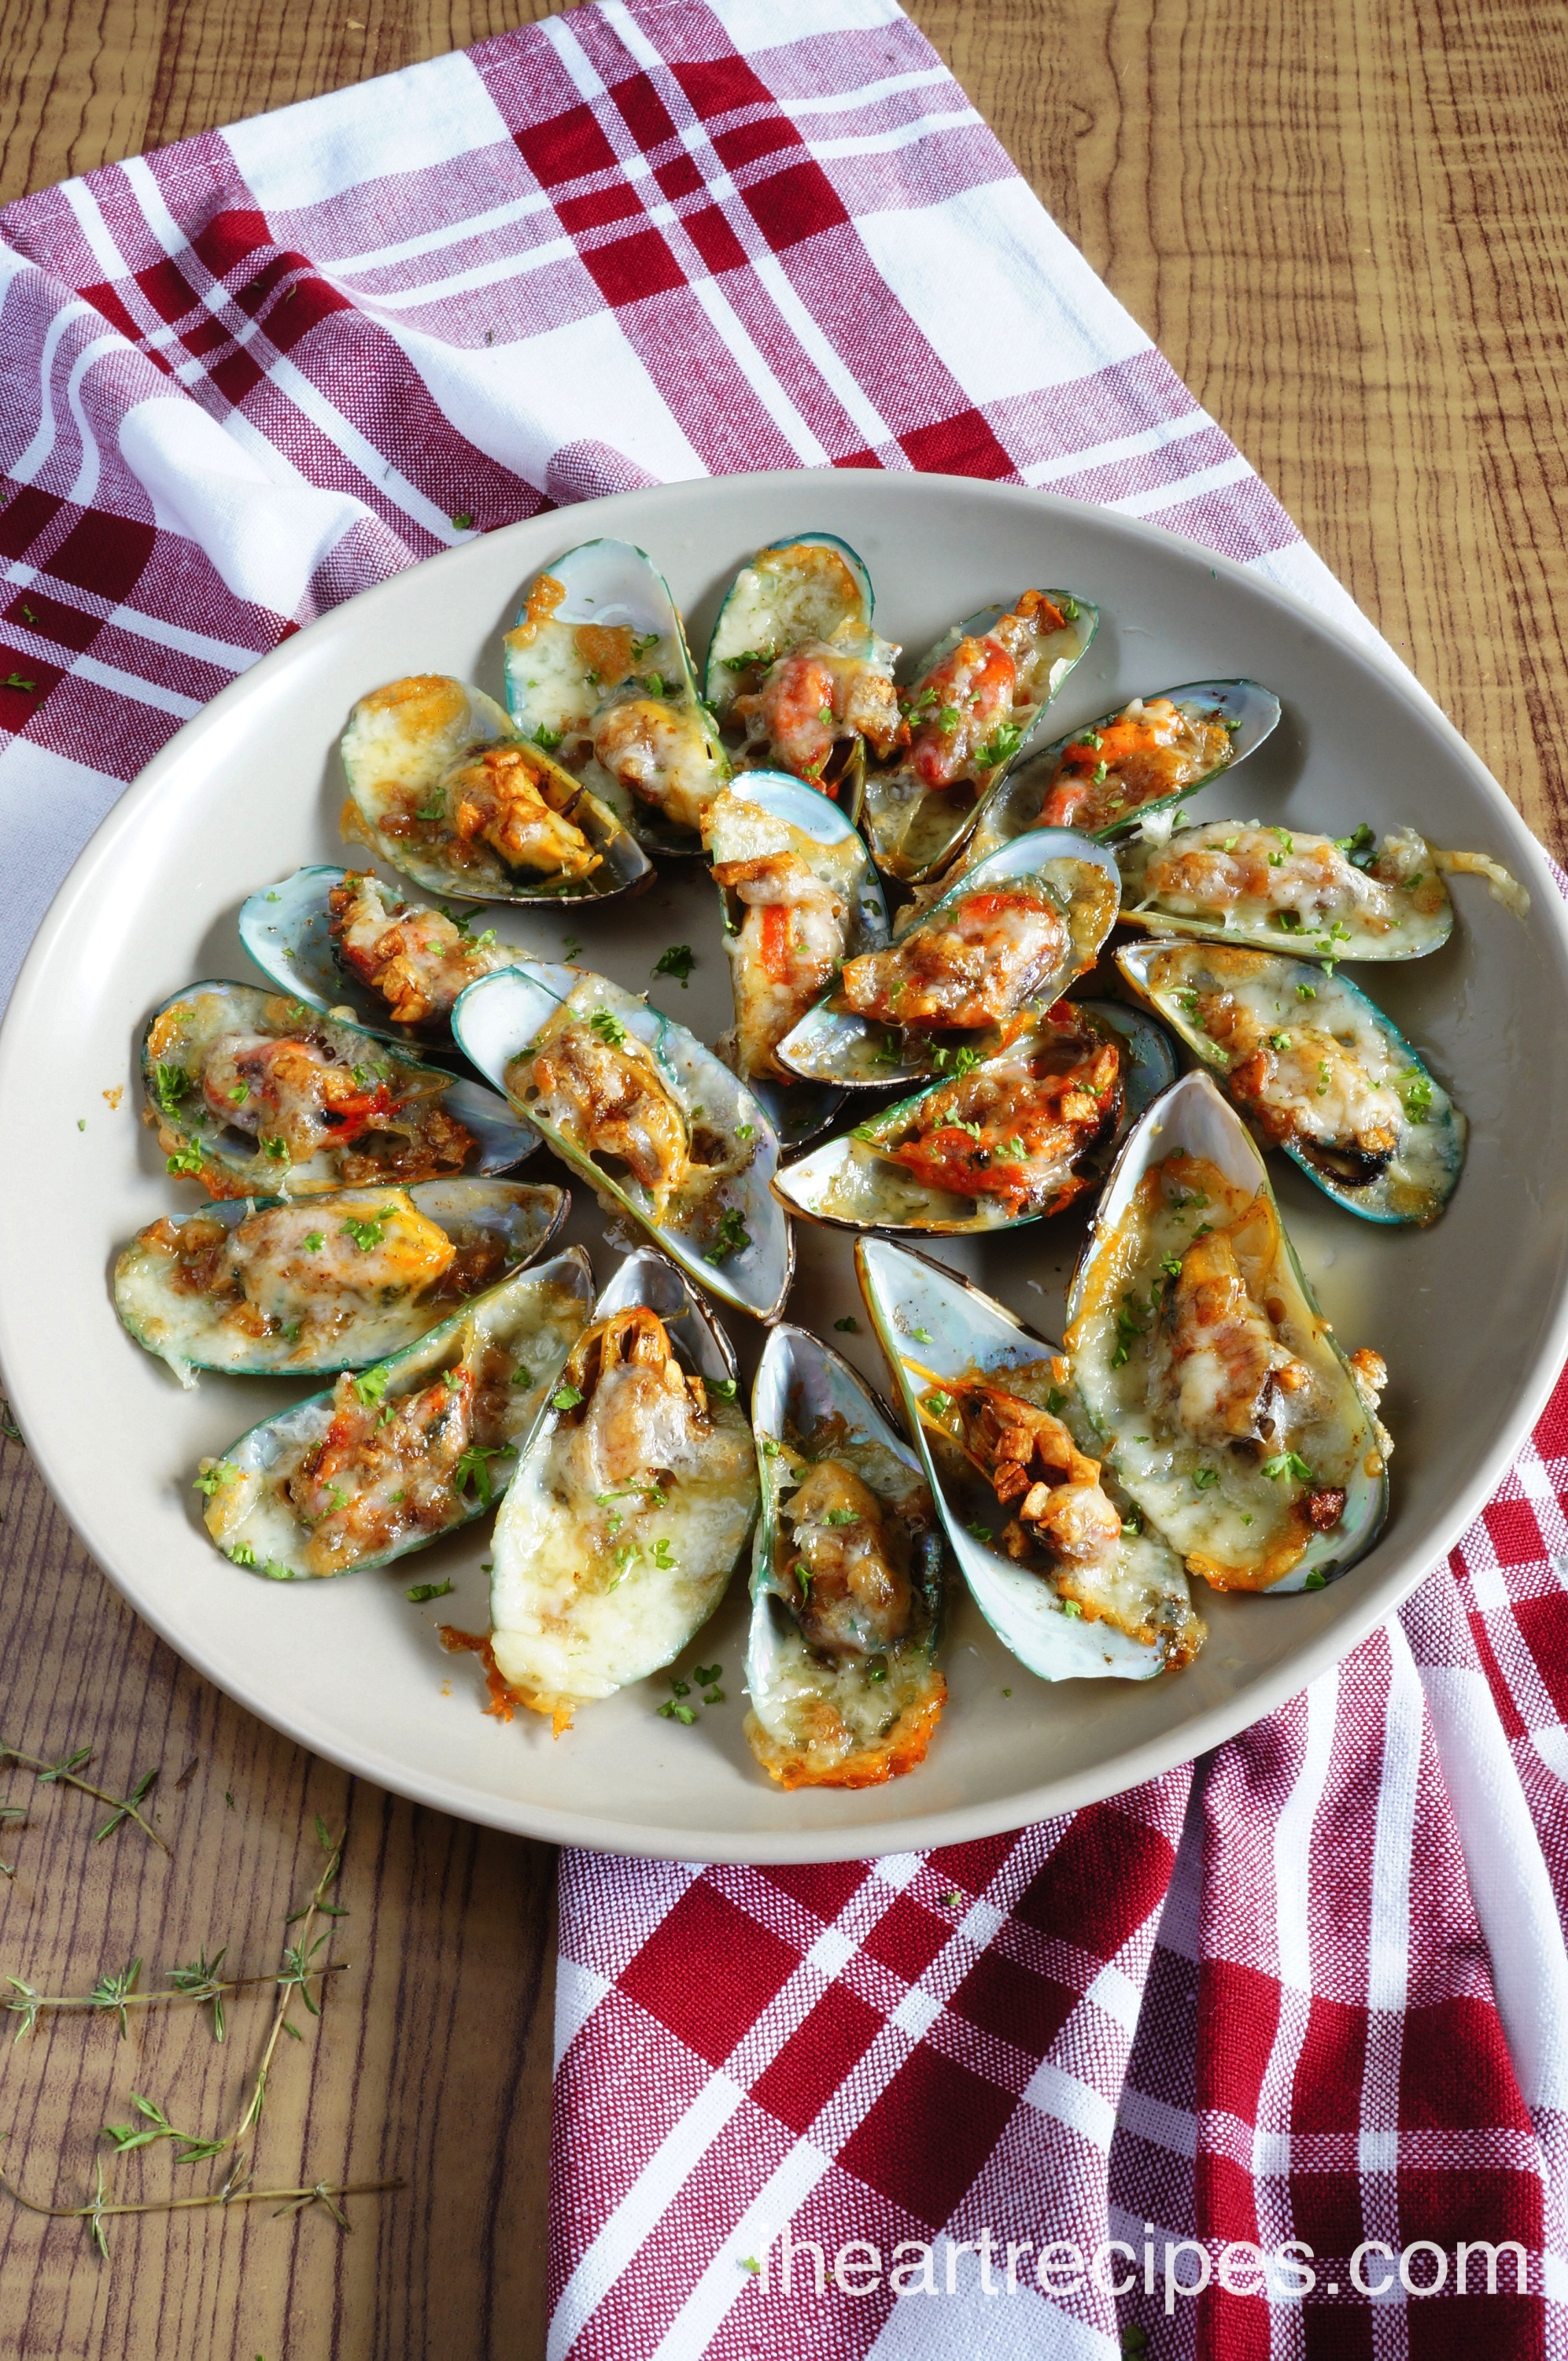 Serve these Cheesy Garlic Mussels as an appetizer, side, or serve with pasta. Any way, they are delectable!